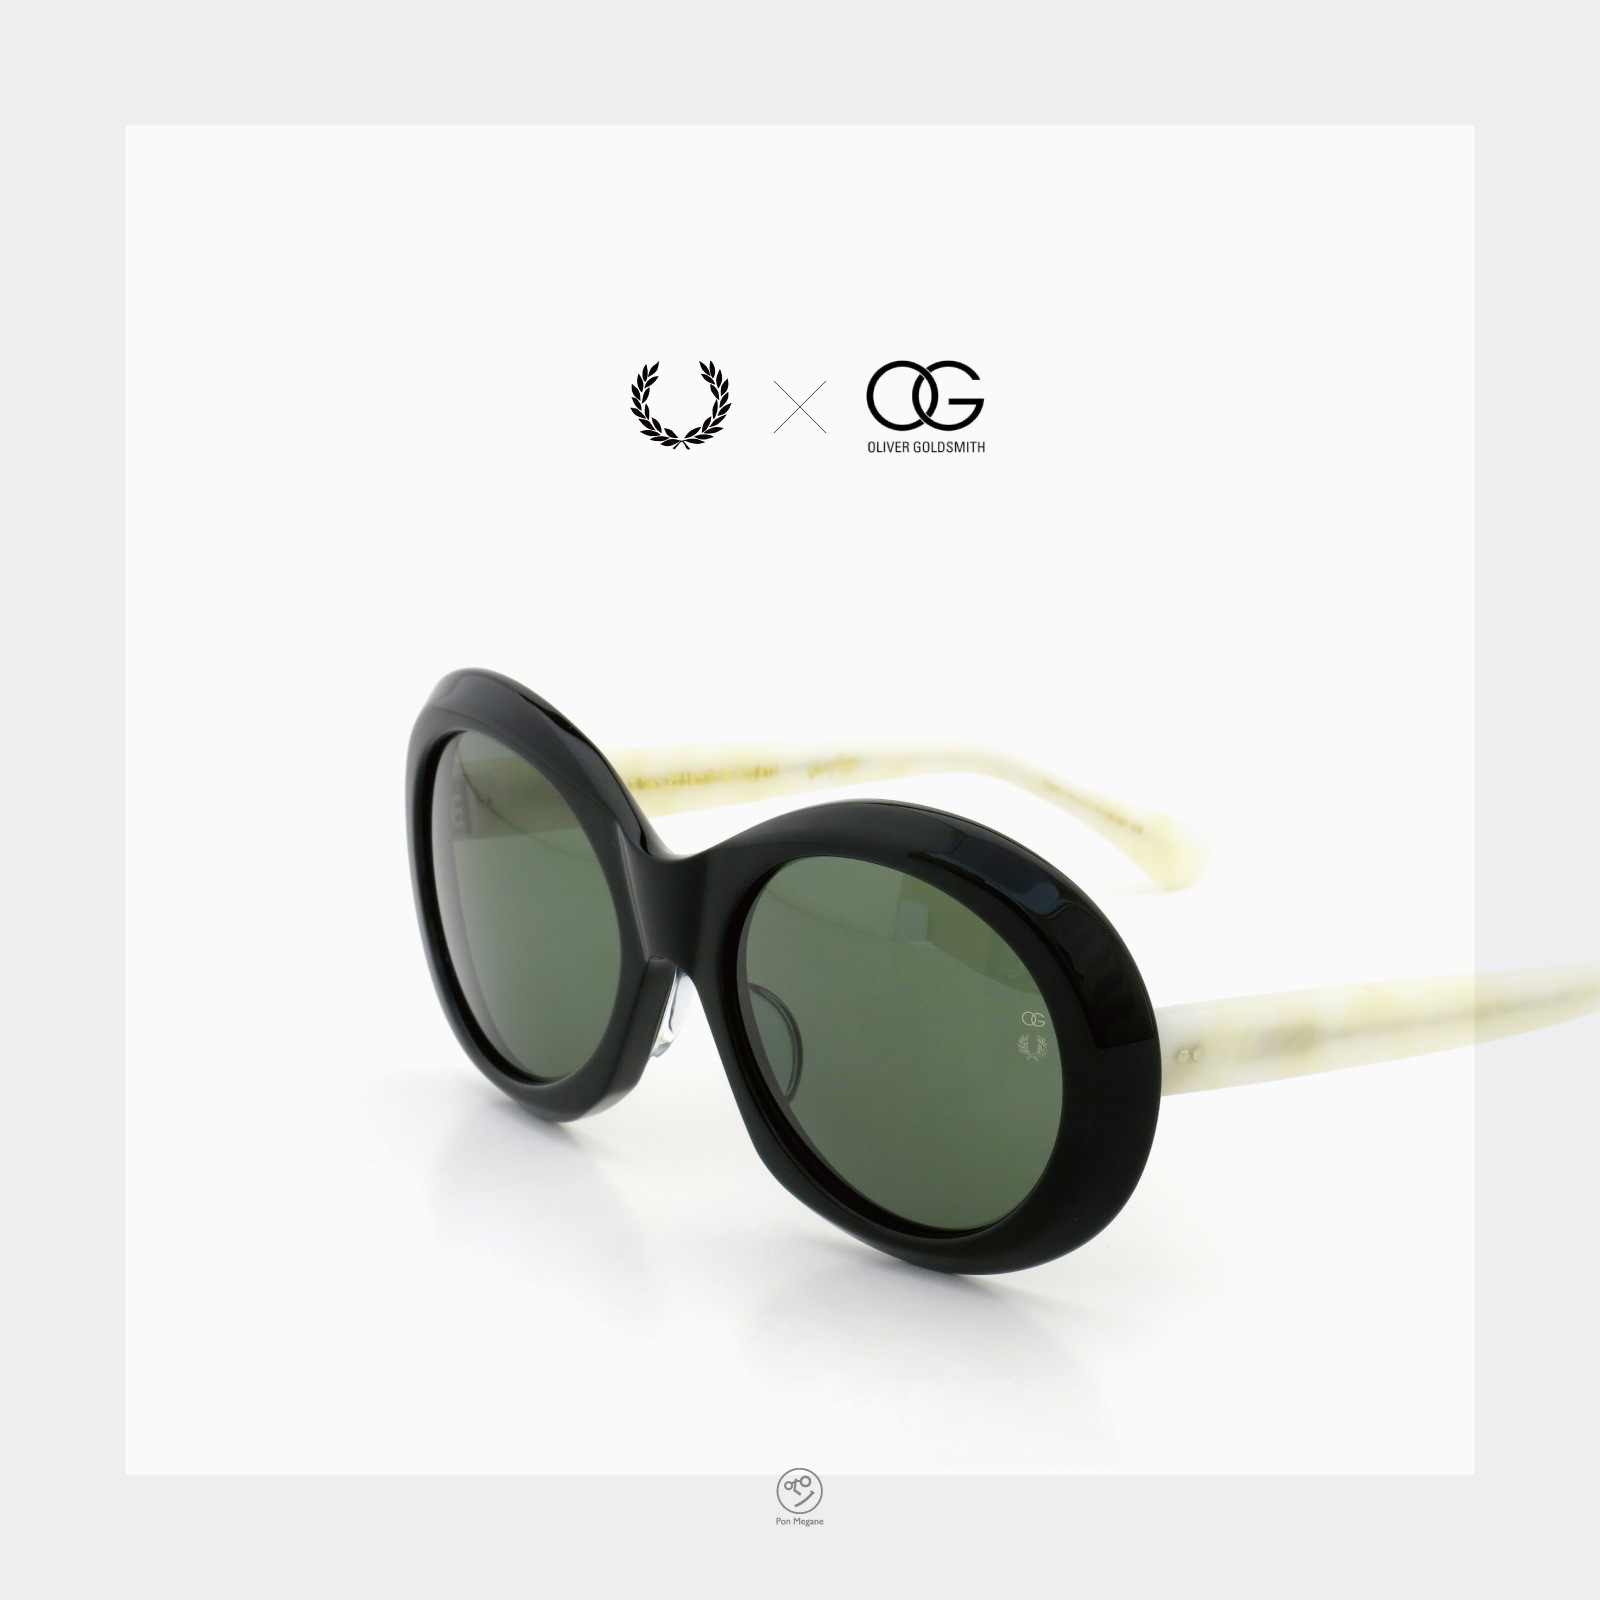 FRED PERRY別注 Oliver Goldsmith /AUDREY 7月15日より販売開始。